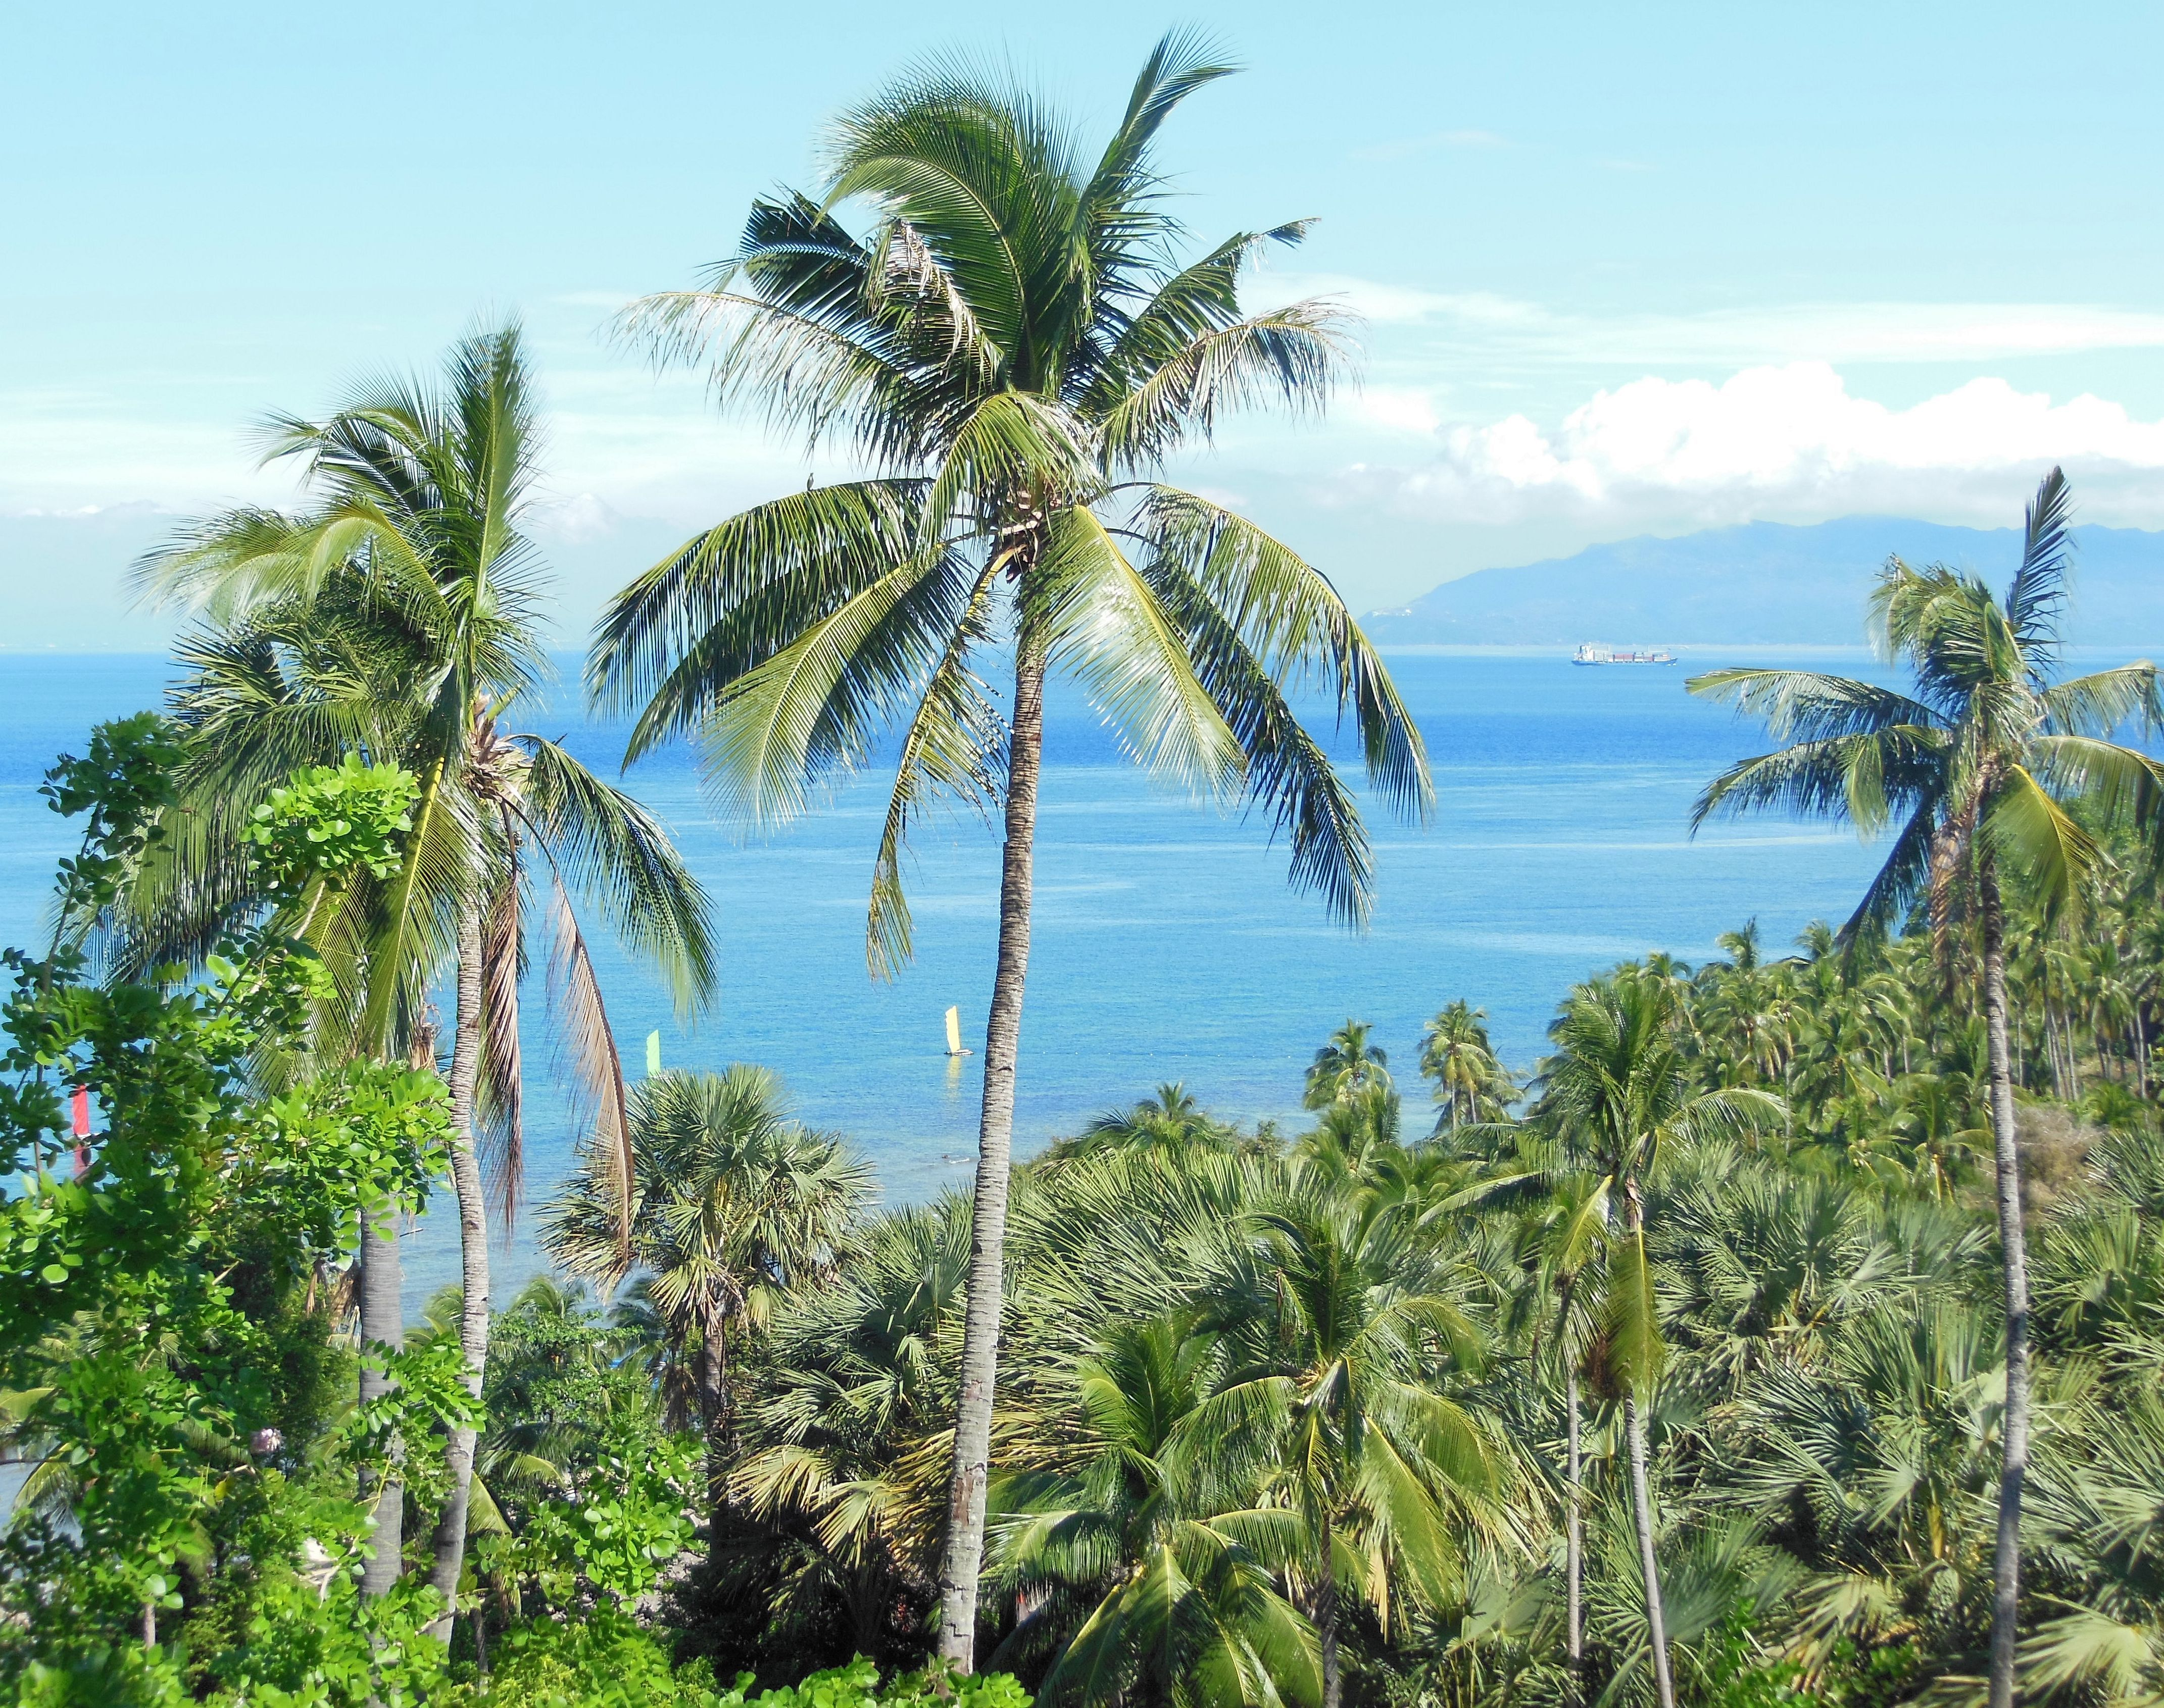 Views from Coco Beach resort, Philippines